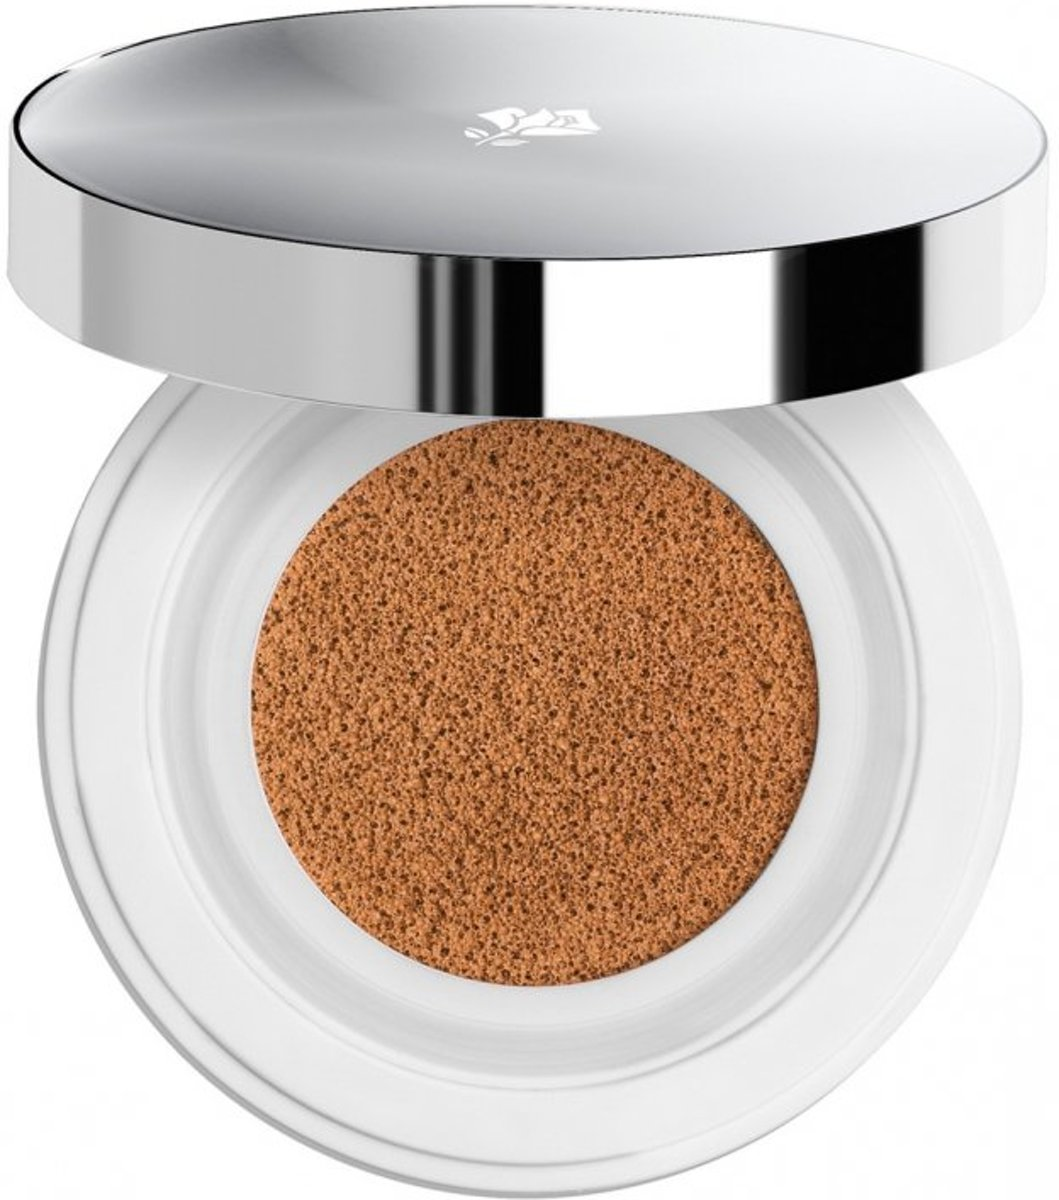 Lancôme Teint Miracle Cushion Compact Foundation  - 02 Beige rose